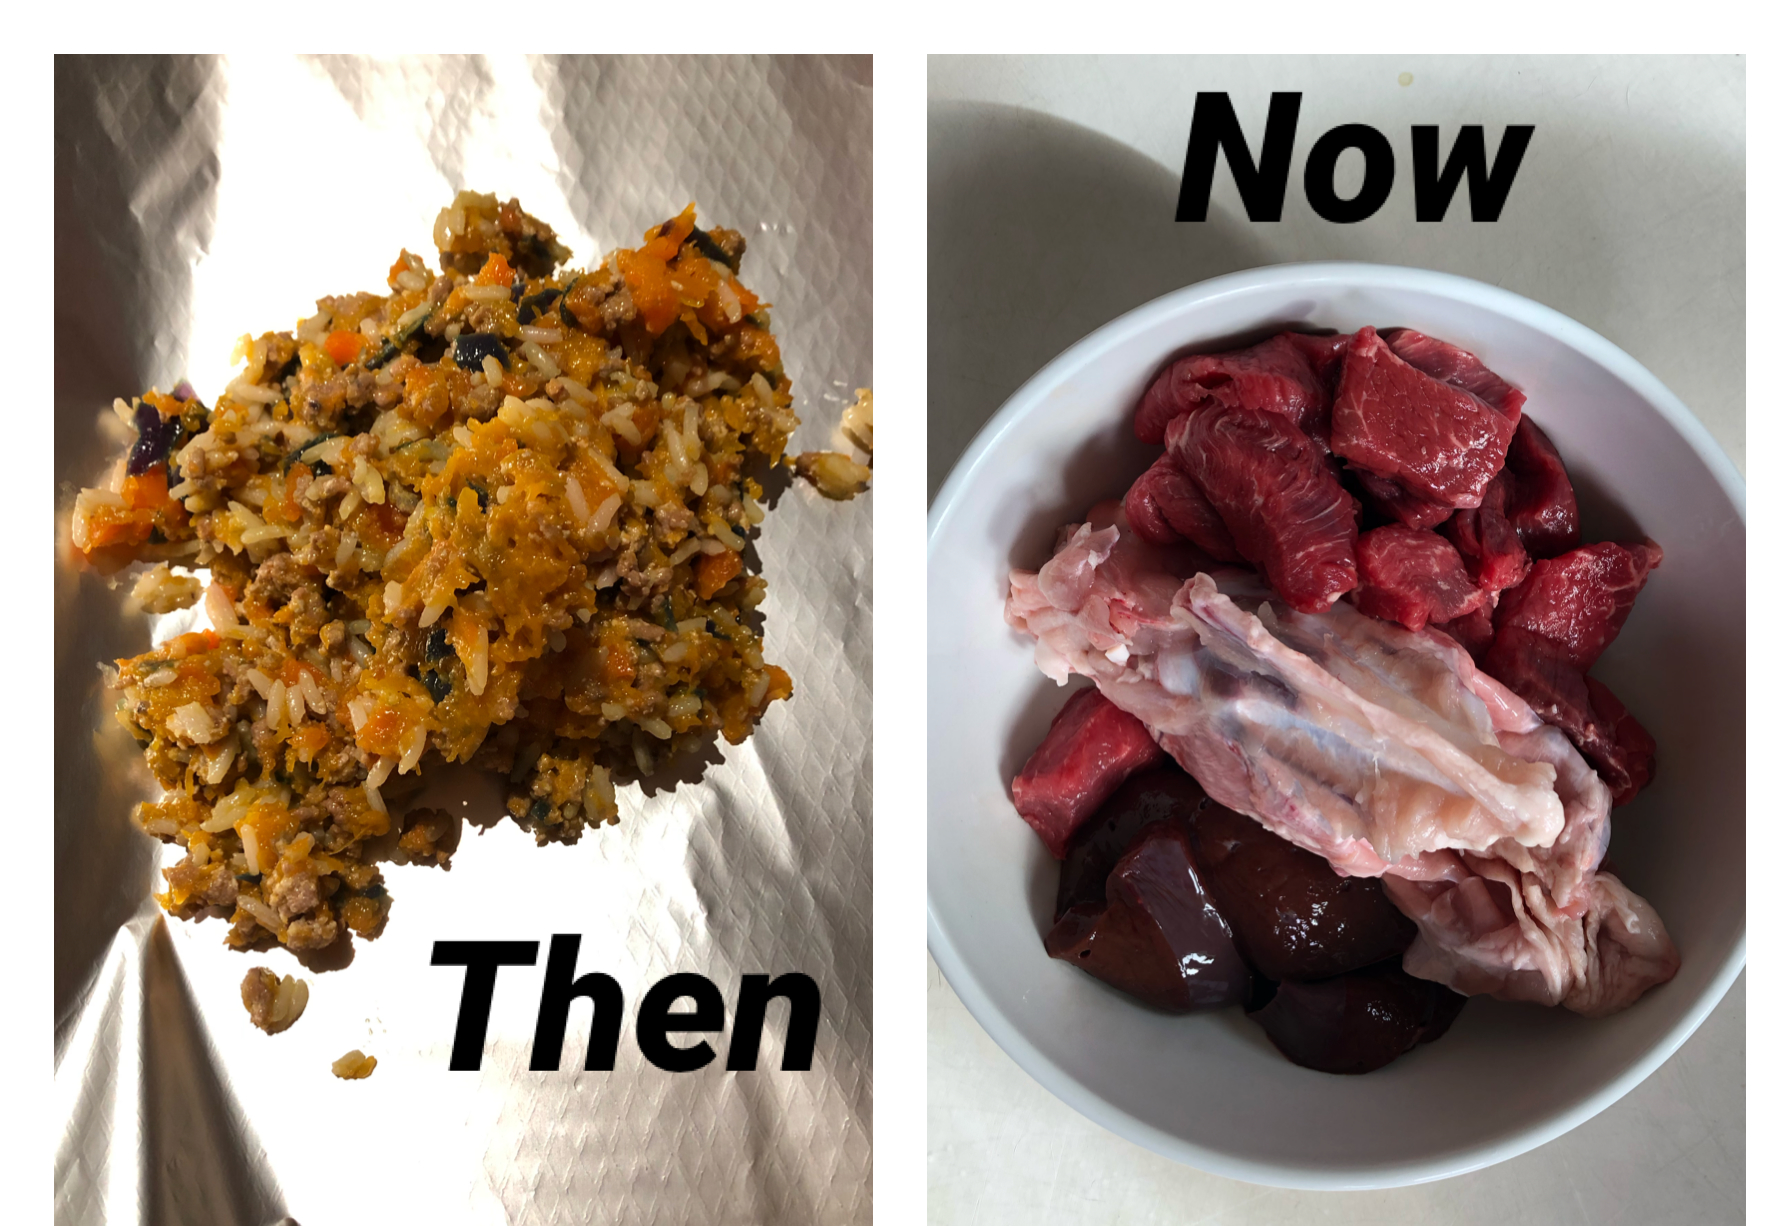 Home cooked food for dogs compared to raw dog food